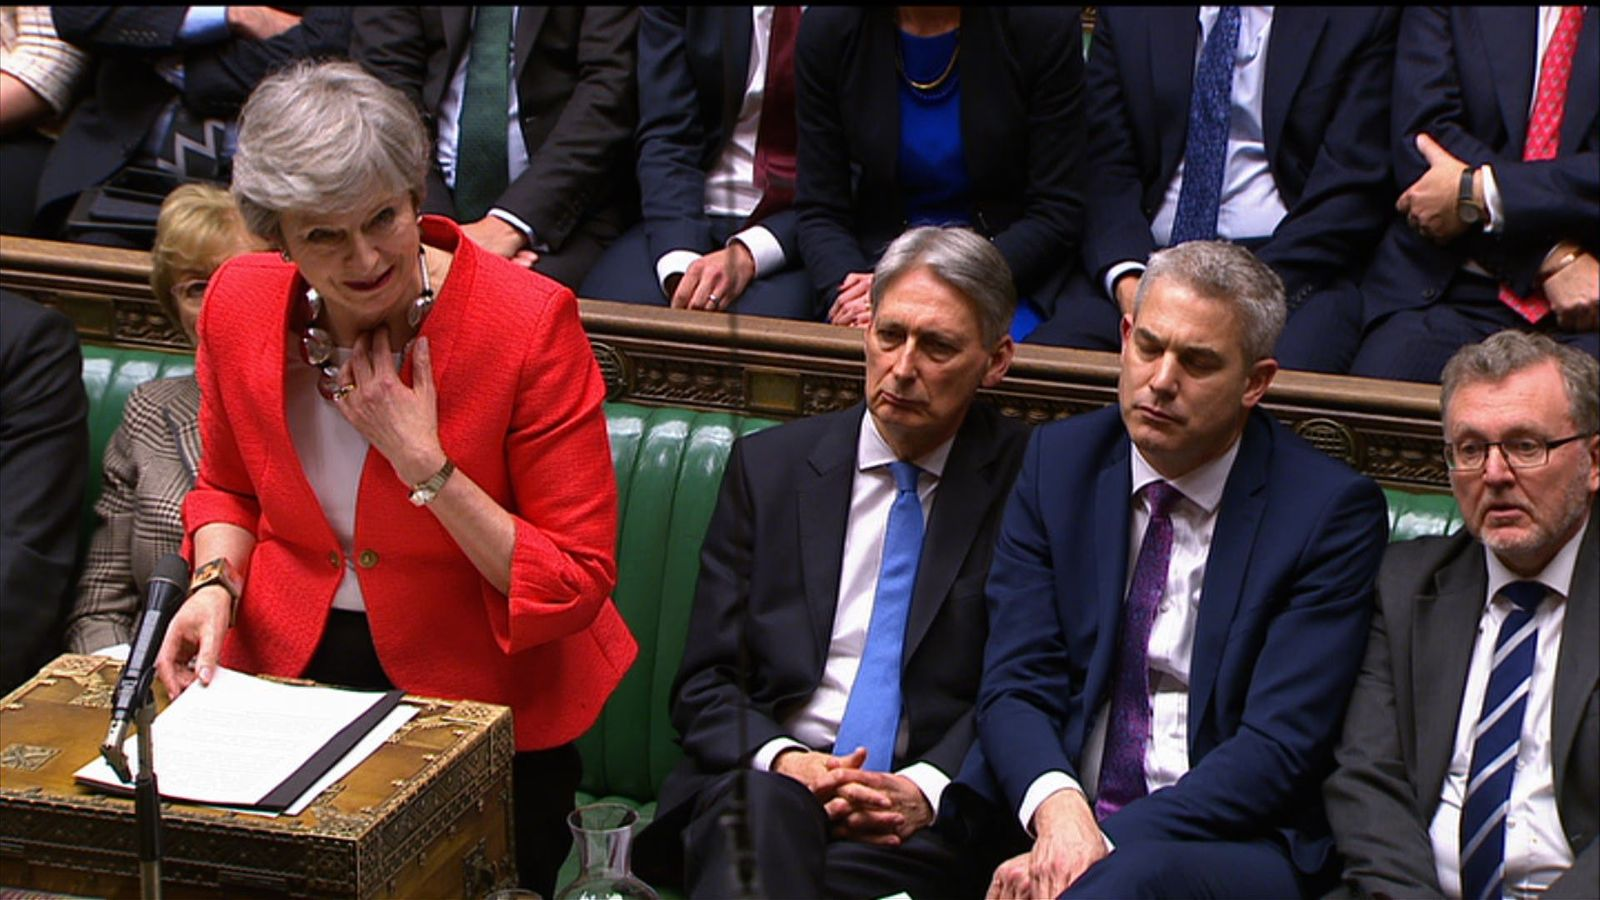 Minister Theresa May / Heiser